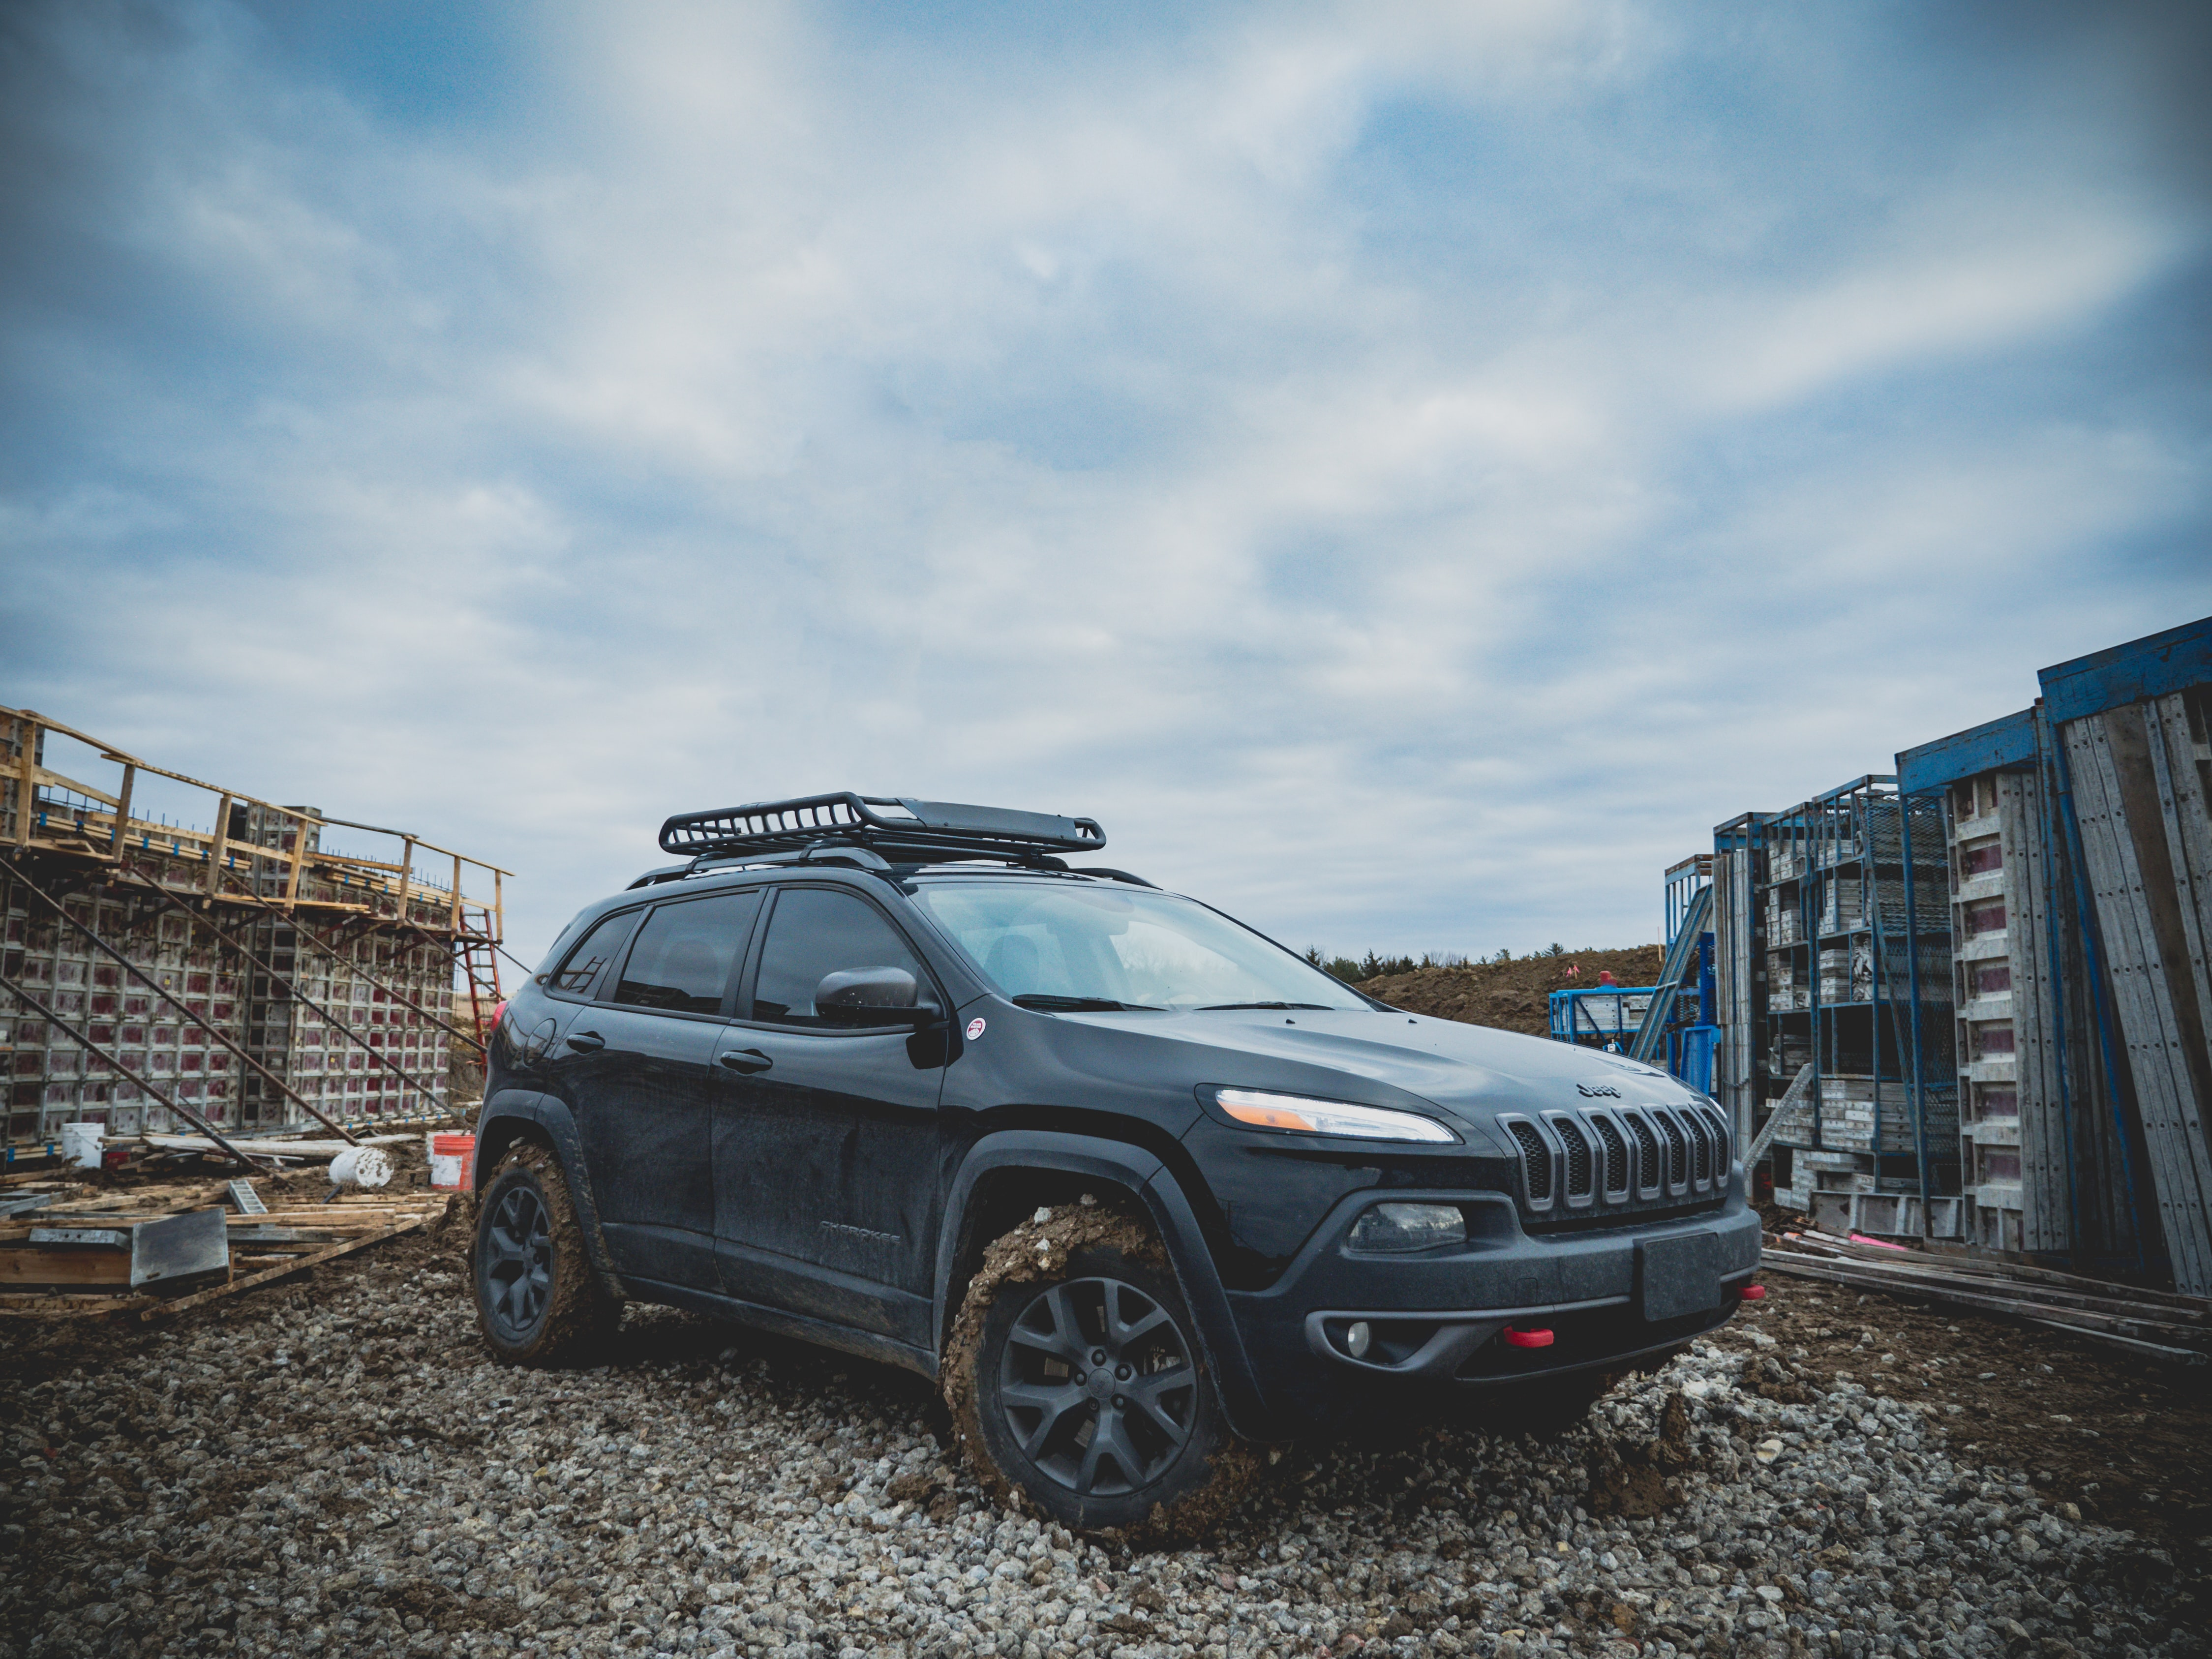 A 4x4 with muddy tires is parked in the middle of a construction site in Lincoln.